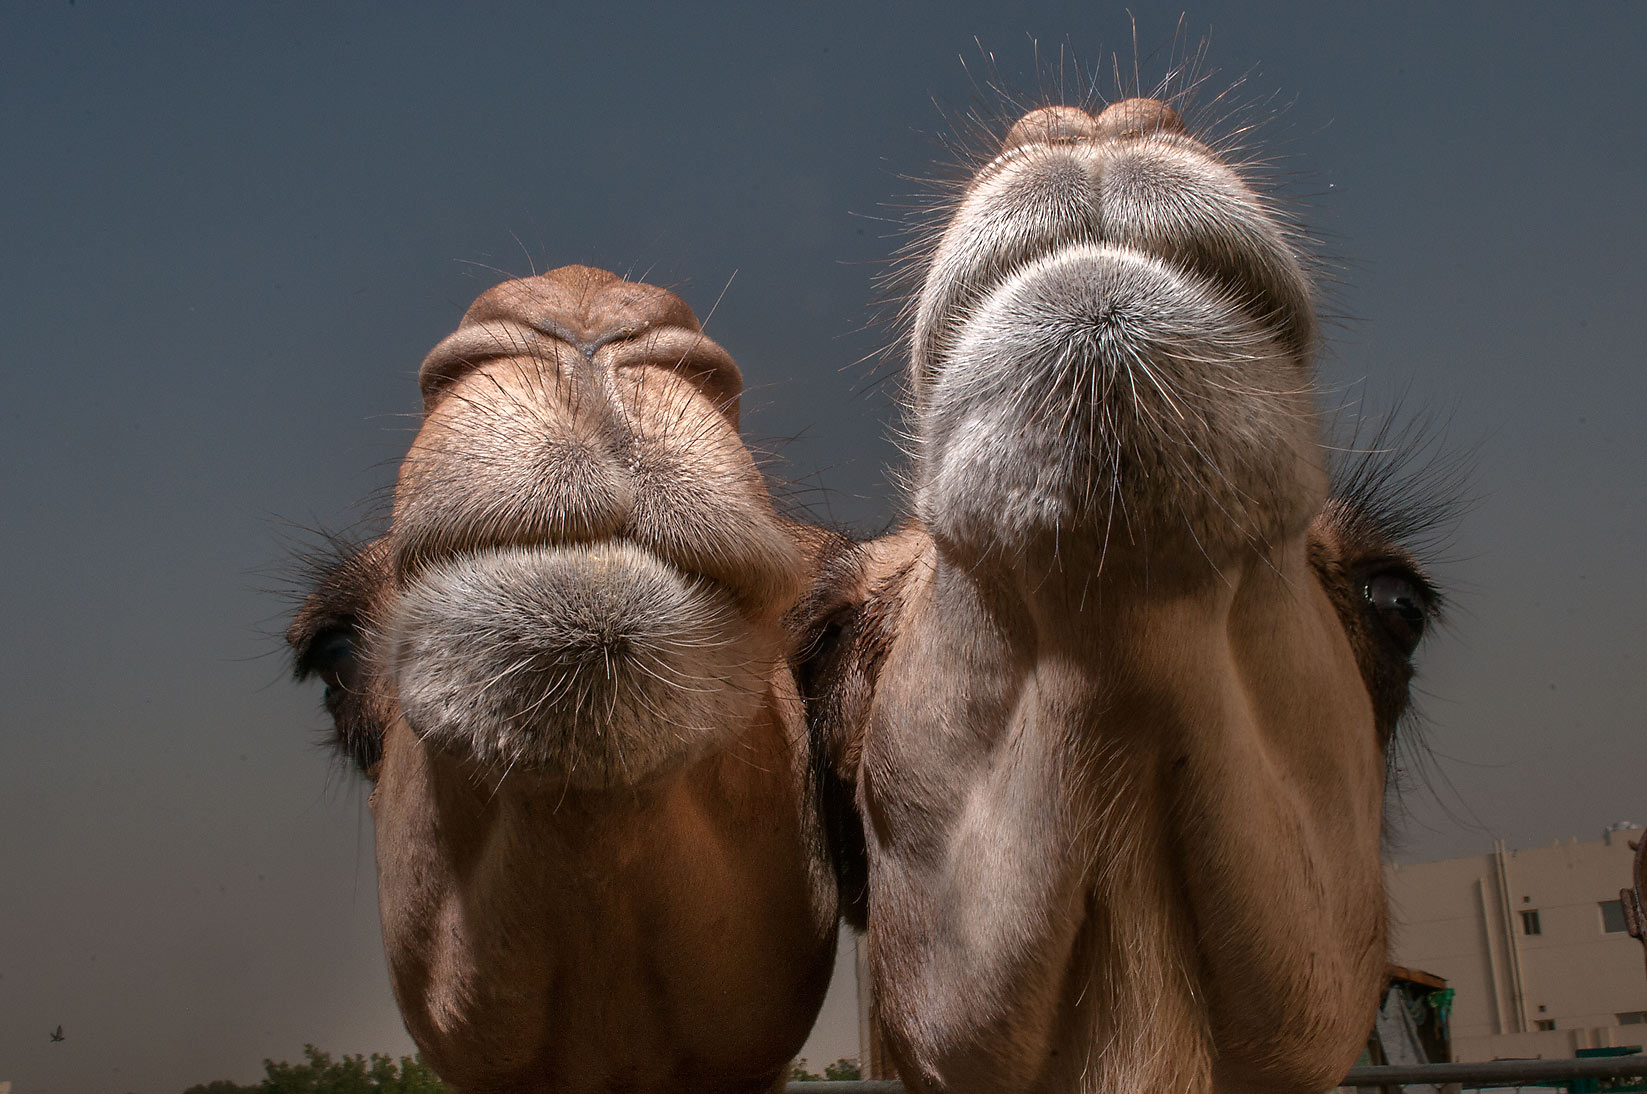 Pair of camel's snouts in Livestock Market, Wholesale Markets area. Doha, Qatar